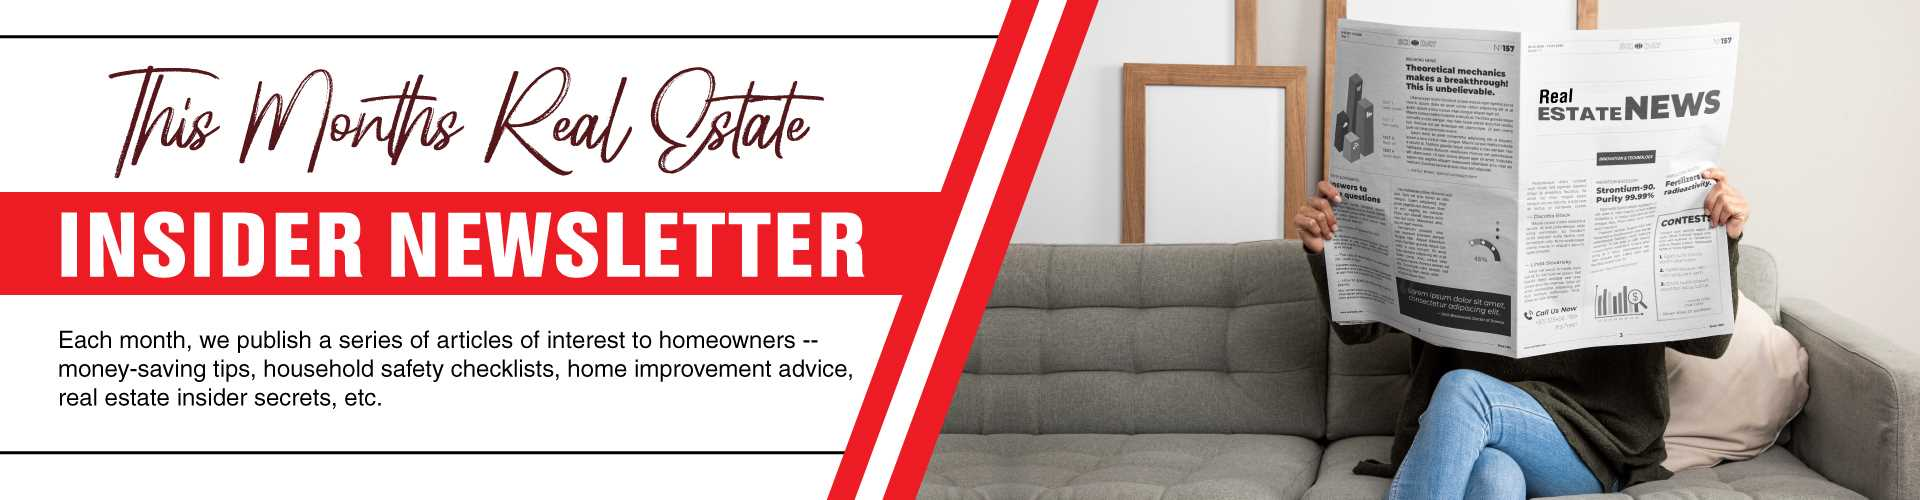 Each month, we publish a series of articles of interest to homeowners